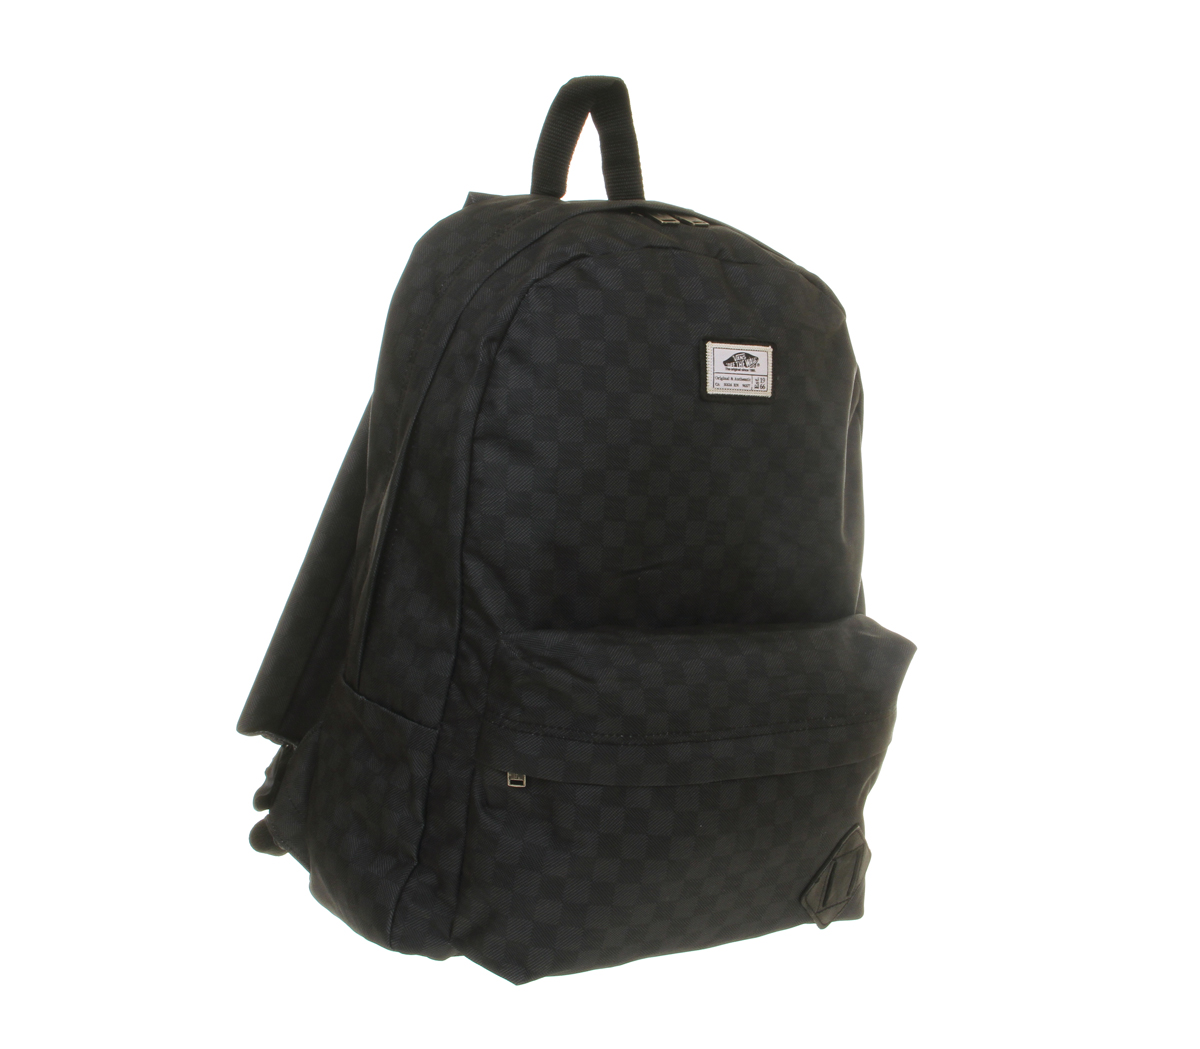 Lyst - Vans Old Skool 11 Backpack in Black for Men 25c0e168e